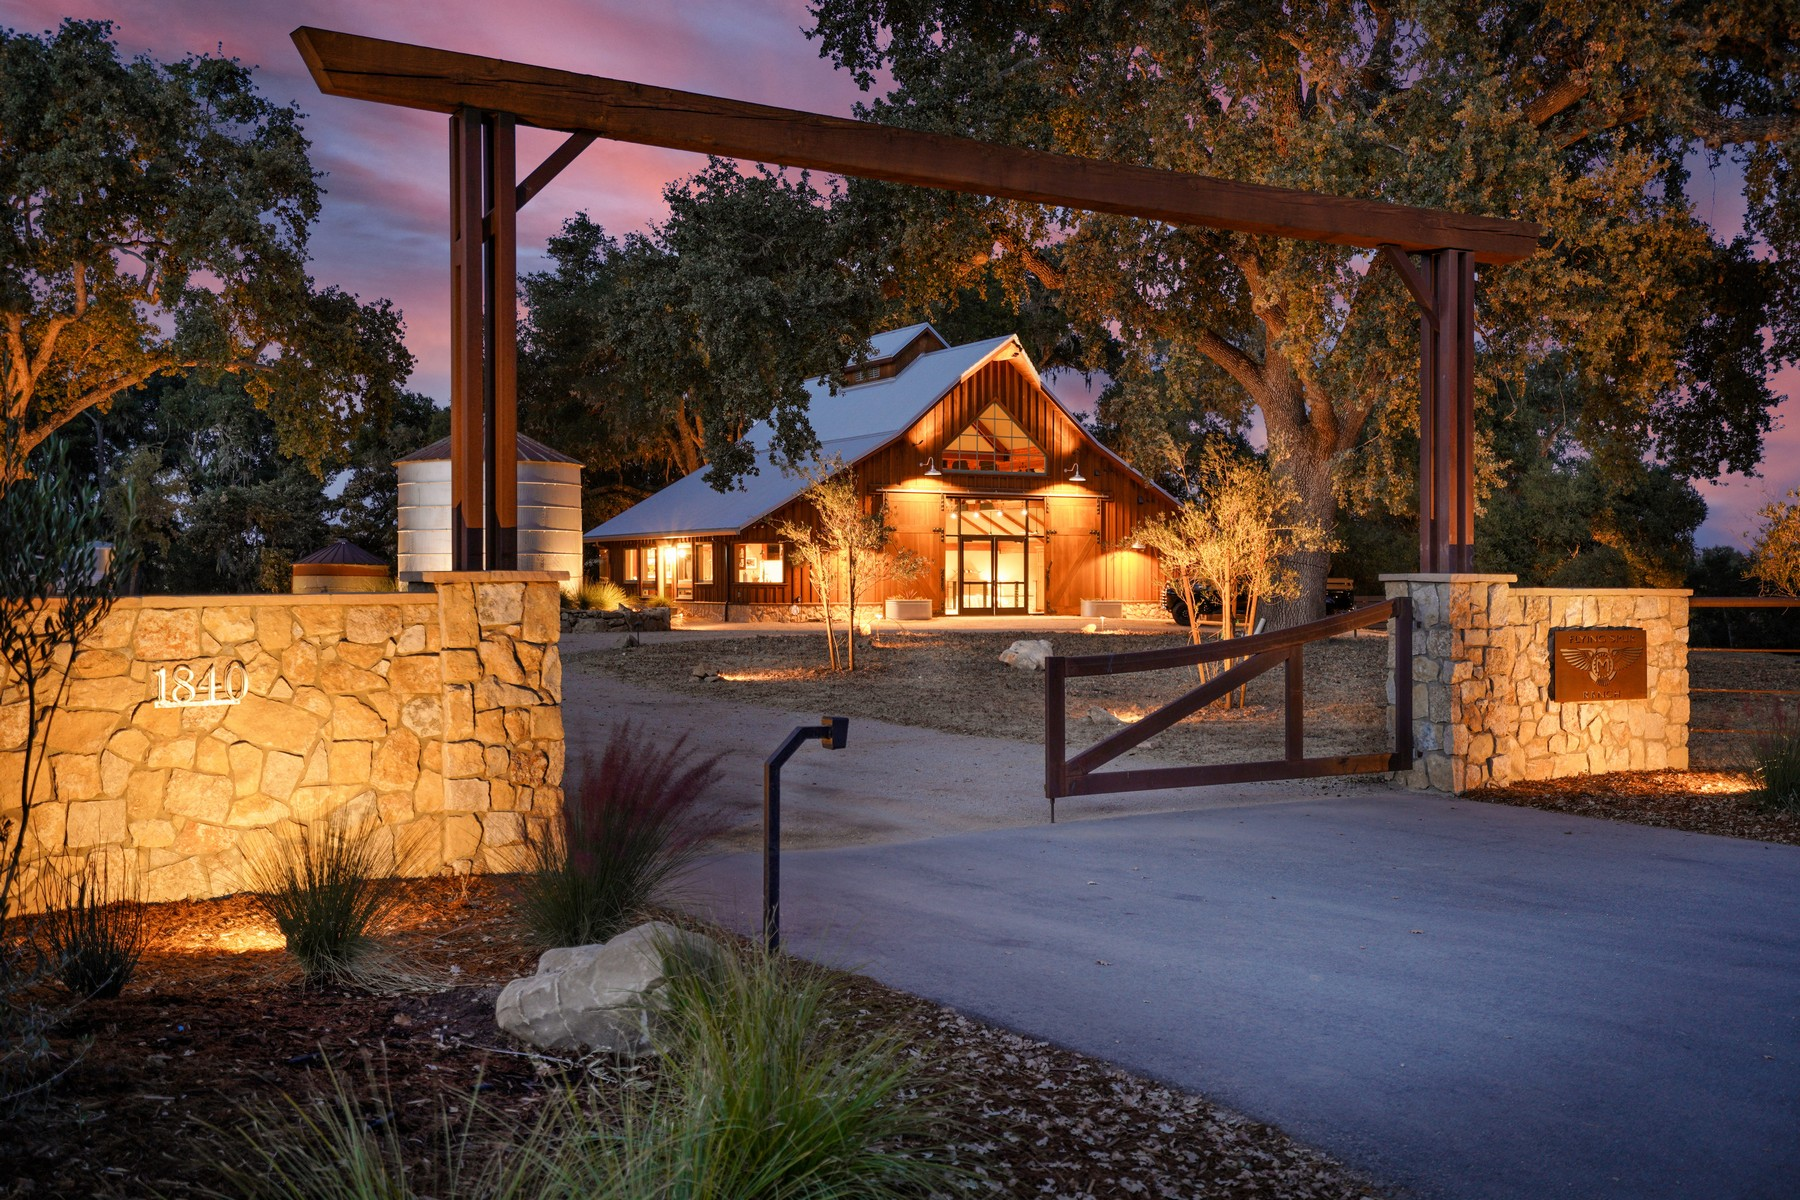 Single Family Homes for Sale at Luxury Wine Country Ranch 1840 Santa Rita Rd. Templeton, California 93465 United States